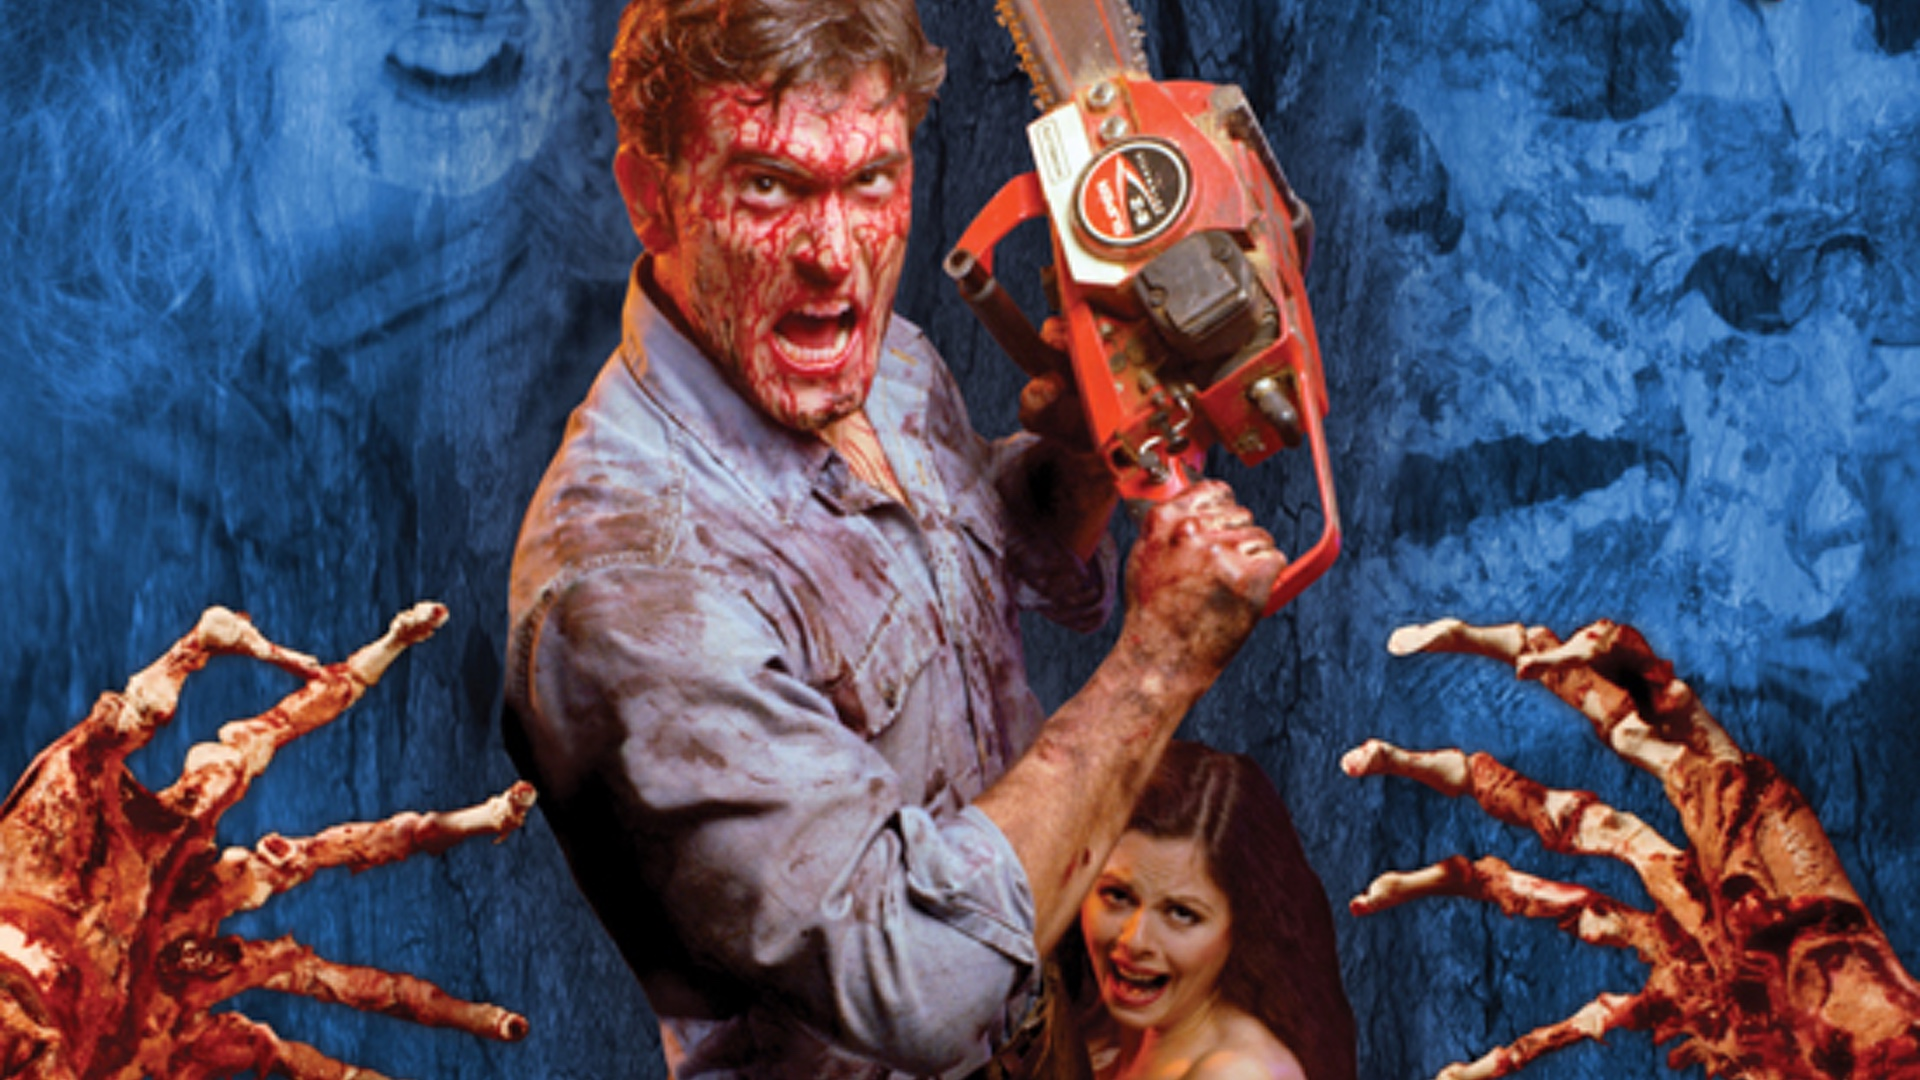 Sam Raimi's EVIL DEAD is Returning To Theaters With an All